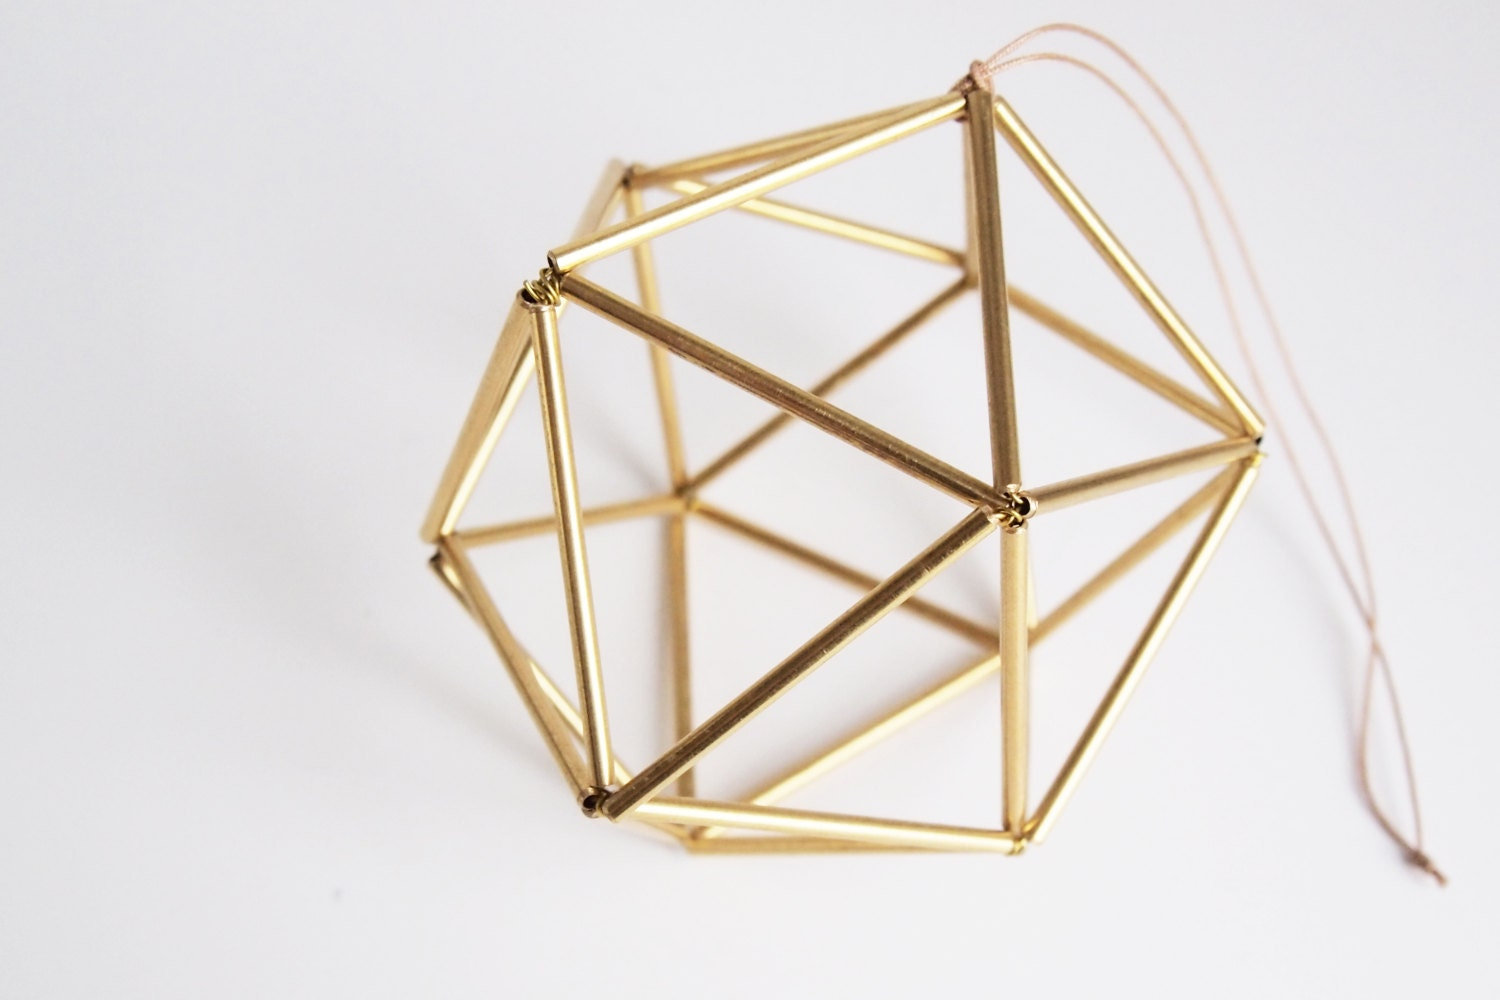 Himmeli brass orb scandinavian geometric ornament gold for Accessoire deco